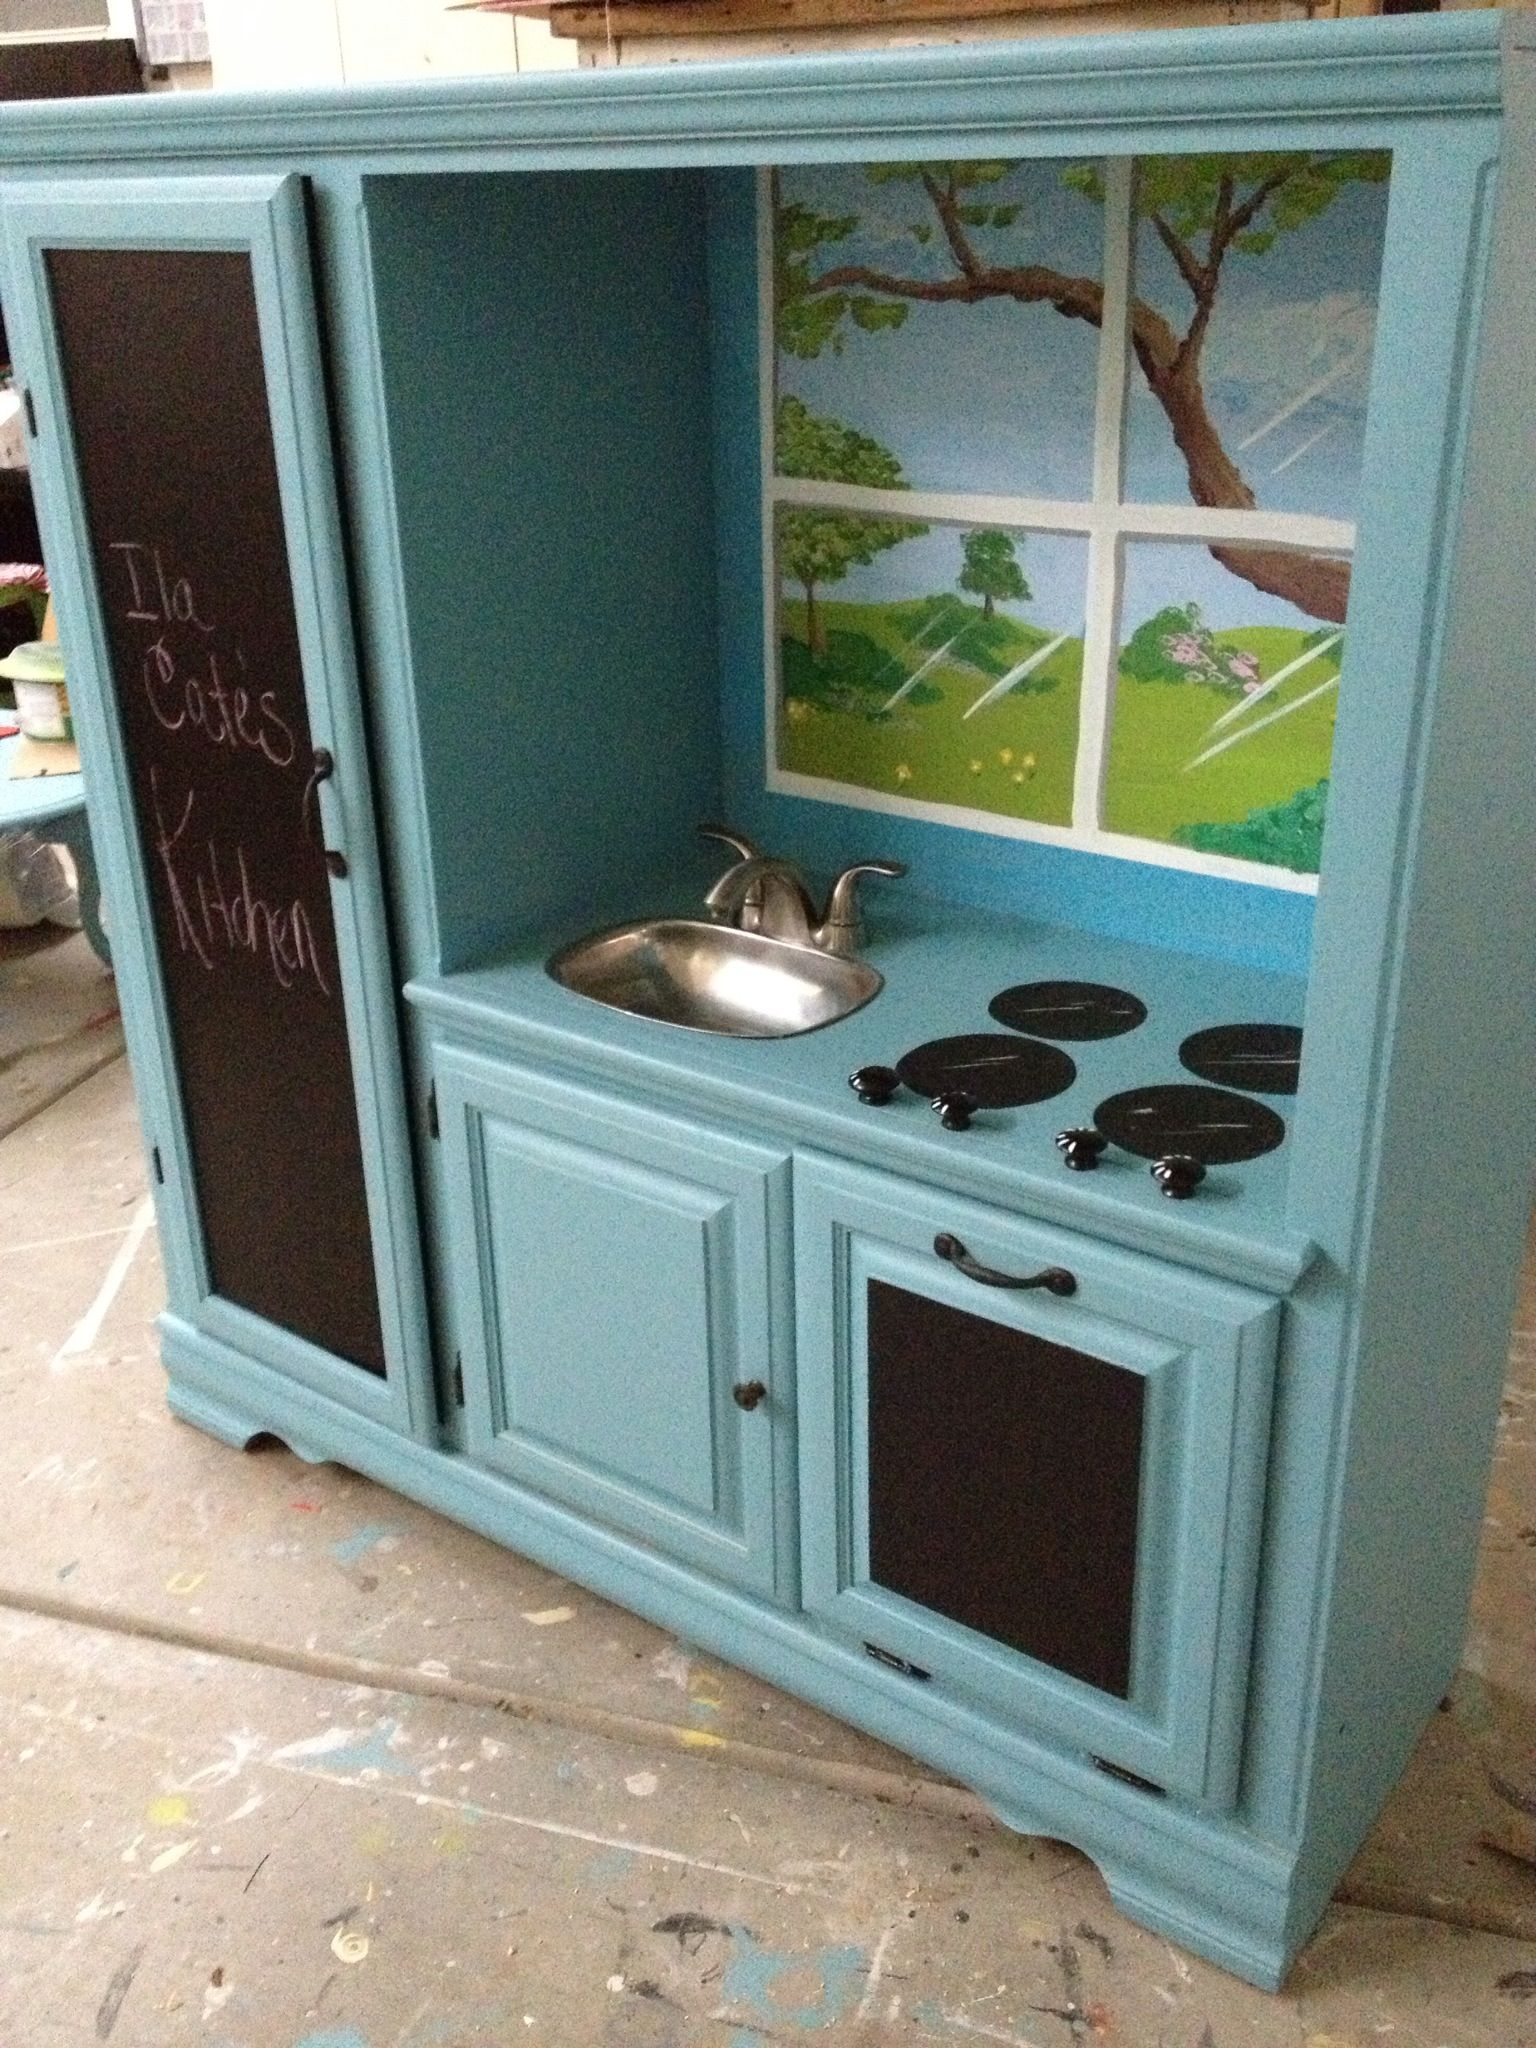 Transformed Old Entertainment Center Into Kids Kitchen Set We Love This Idea Great Upcycle Use Of An Diy